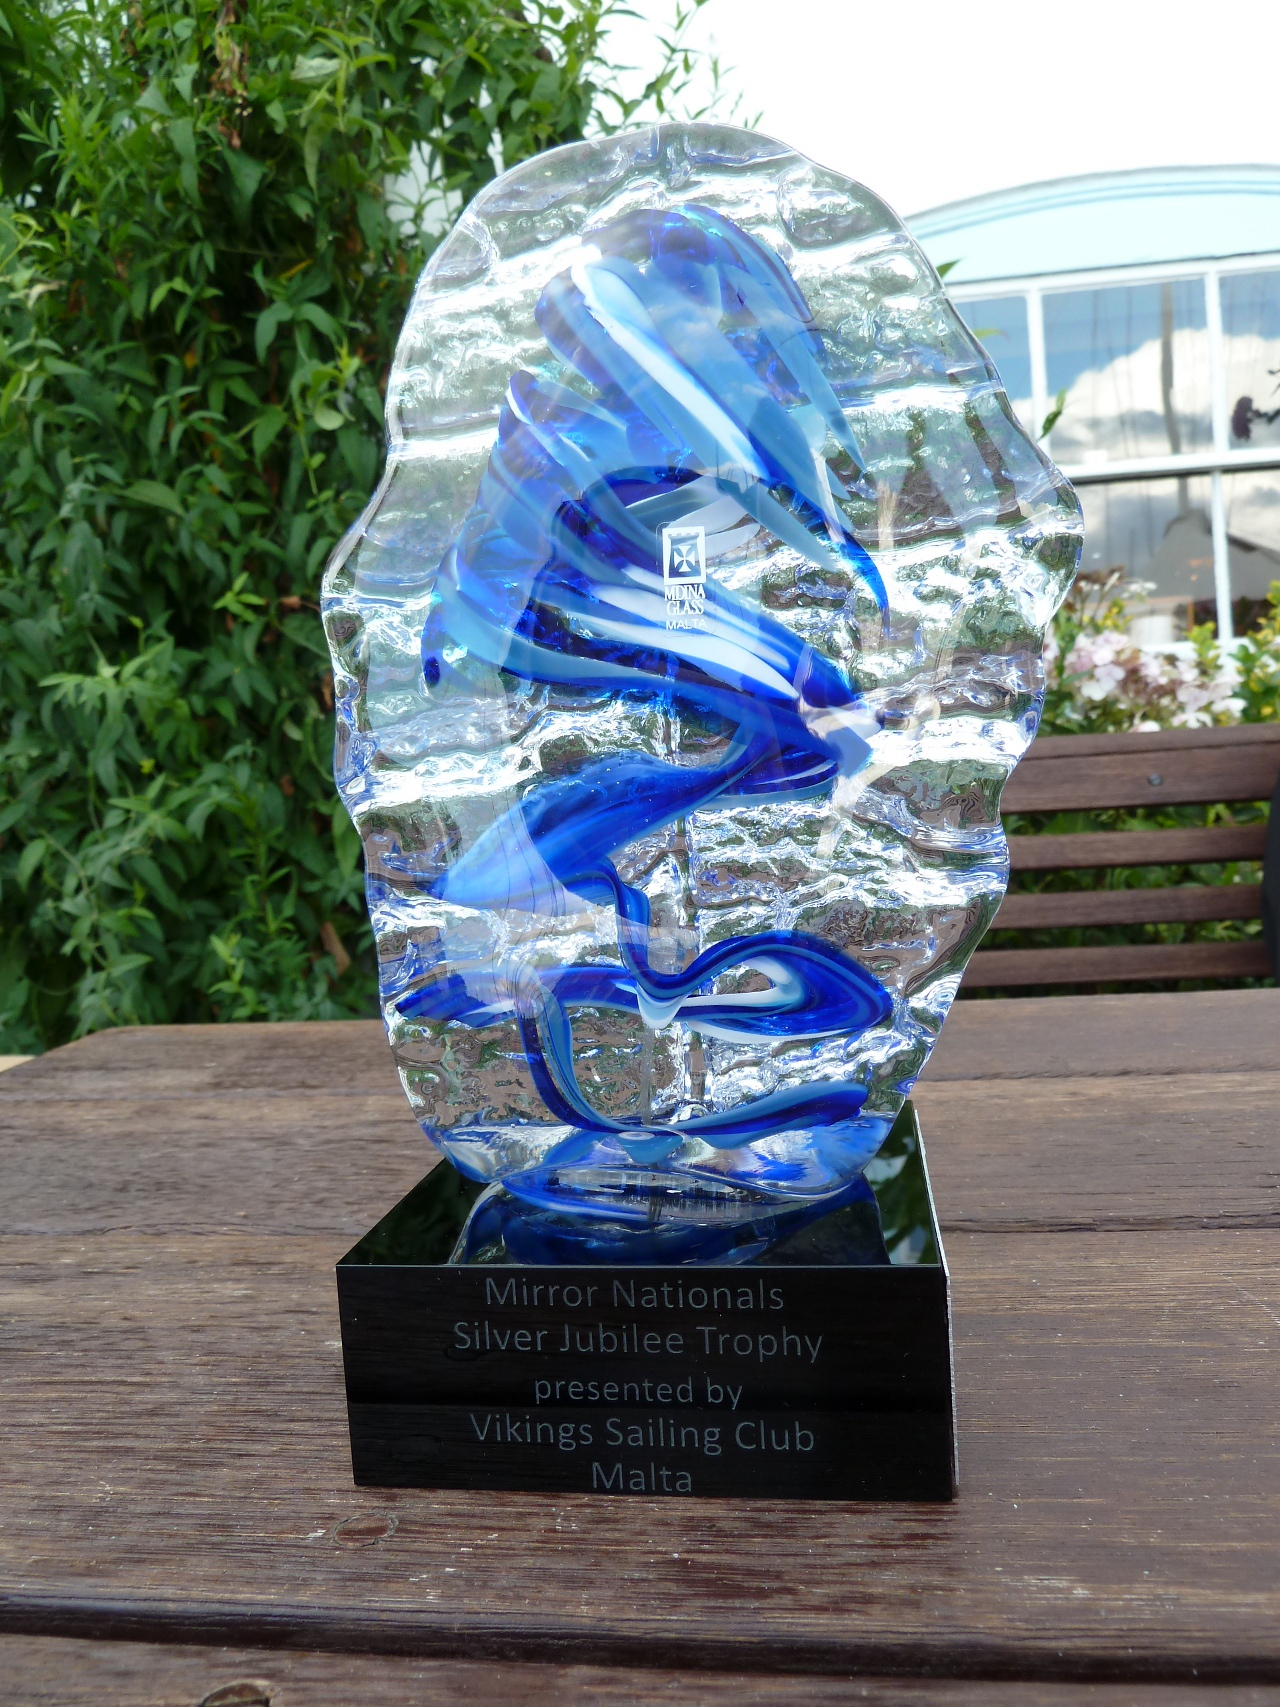 A clear and blue glass trophy with a black plastic base